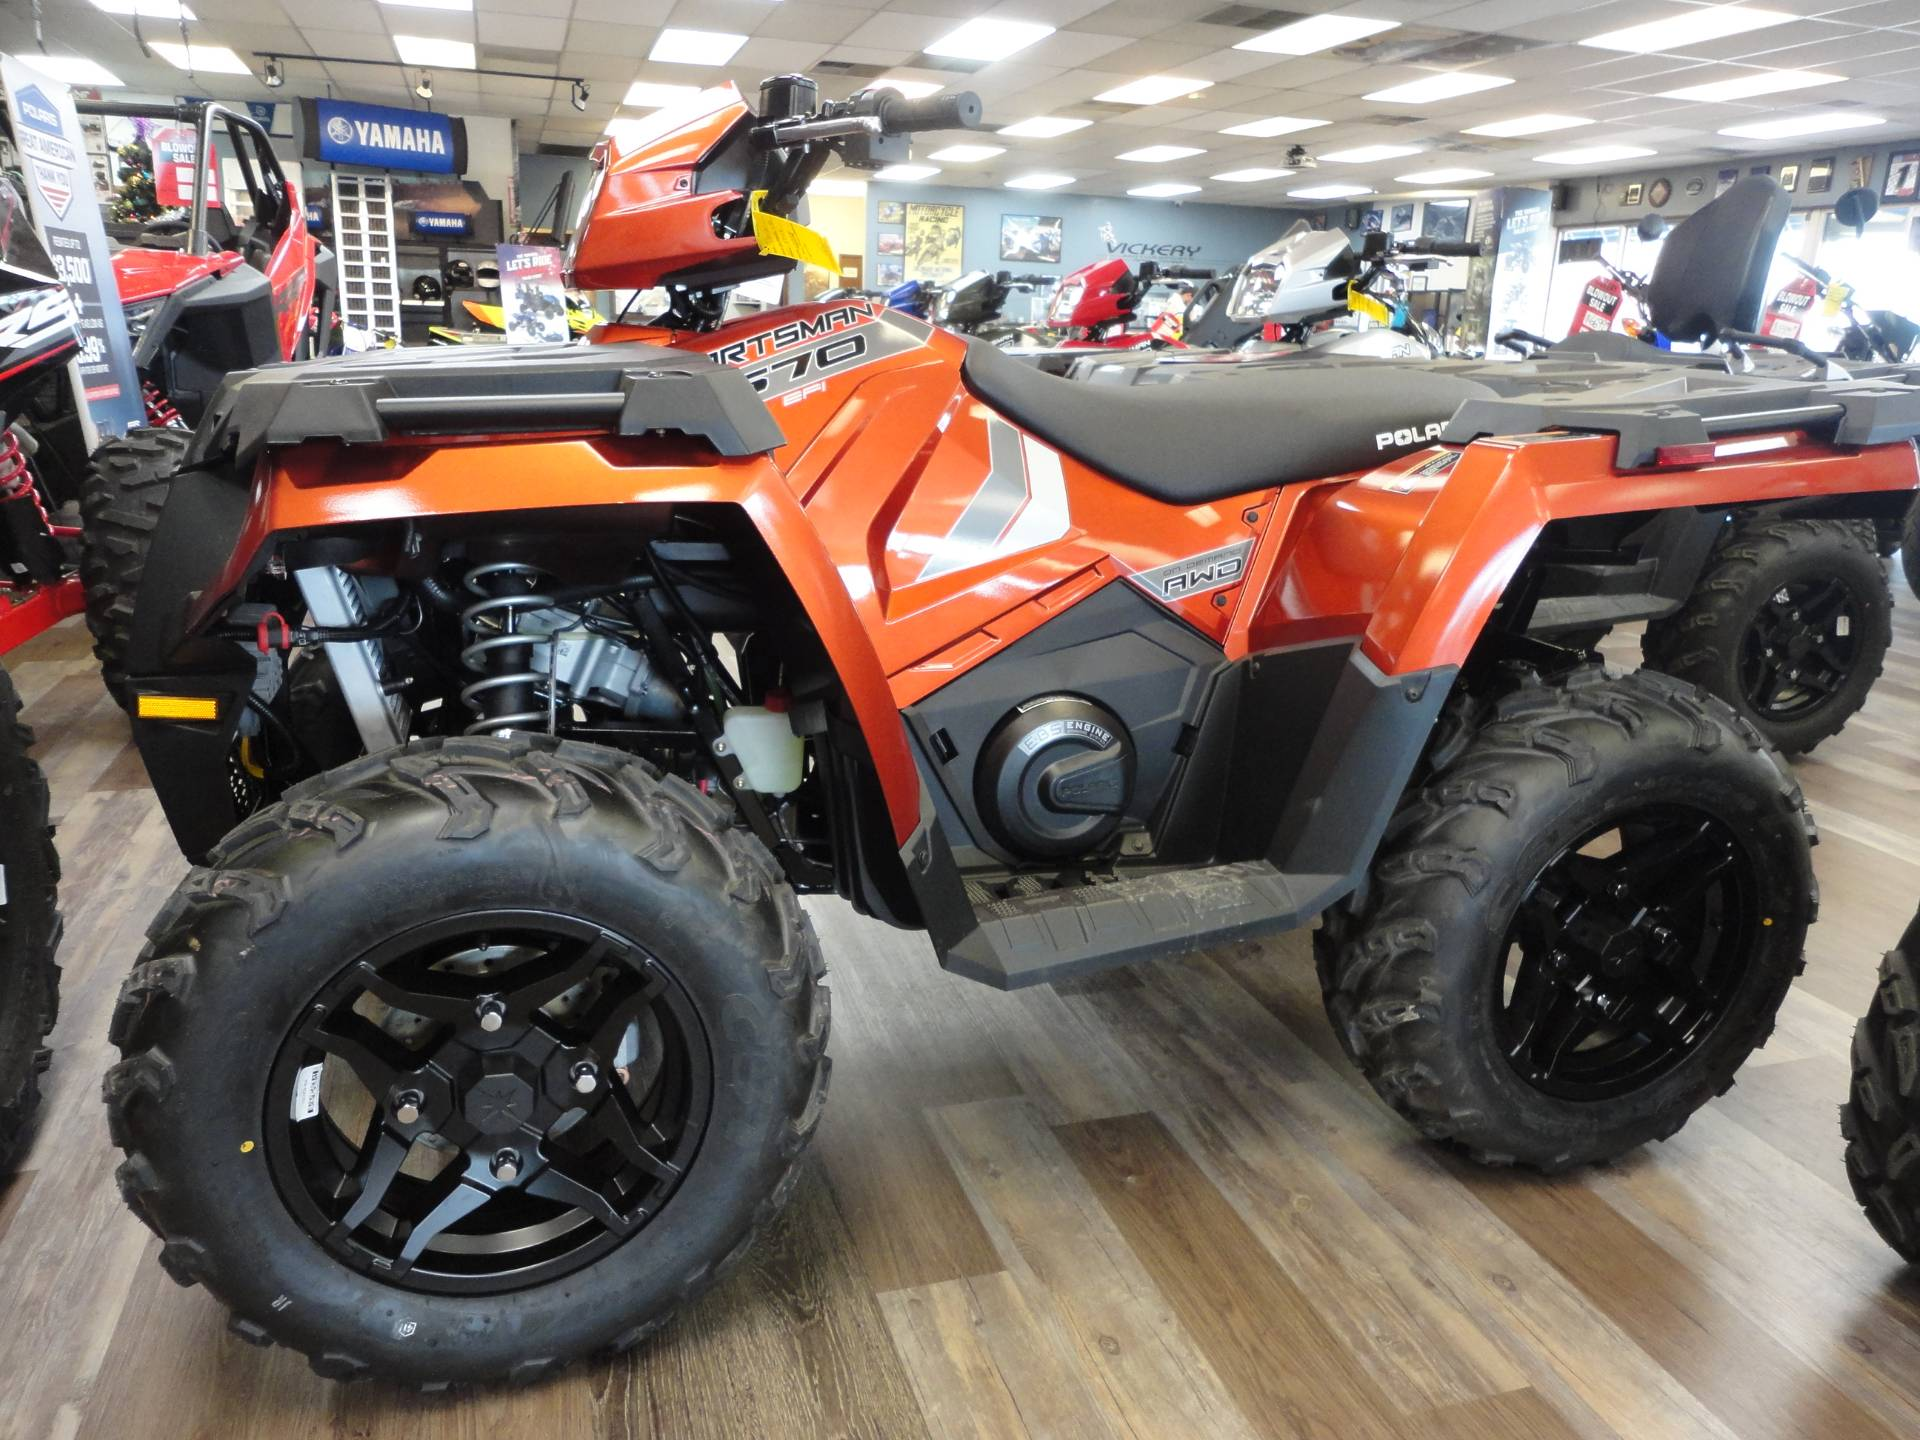 2020 Polaris Sportsman 570 Premium in Denver, Colorado - Photo 2